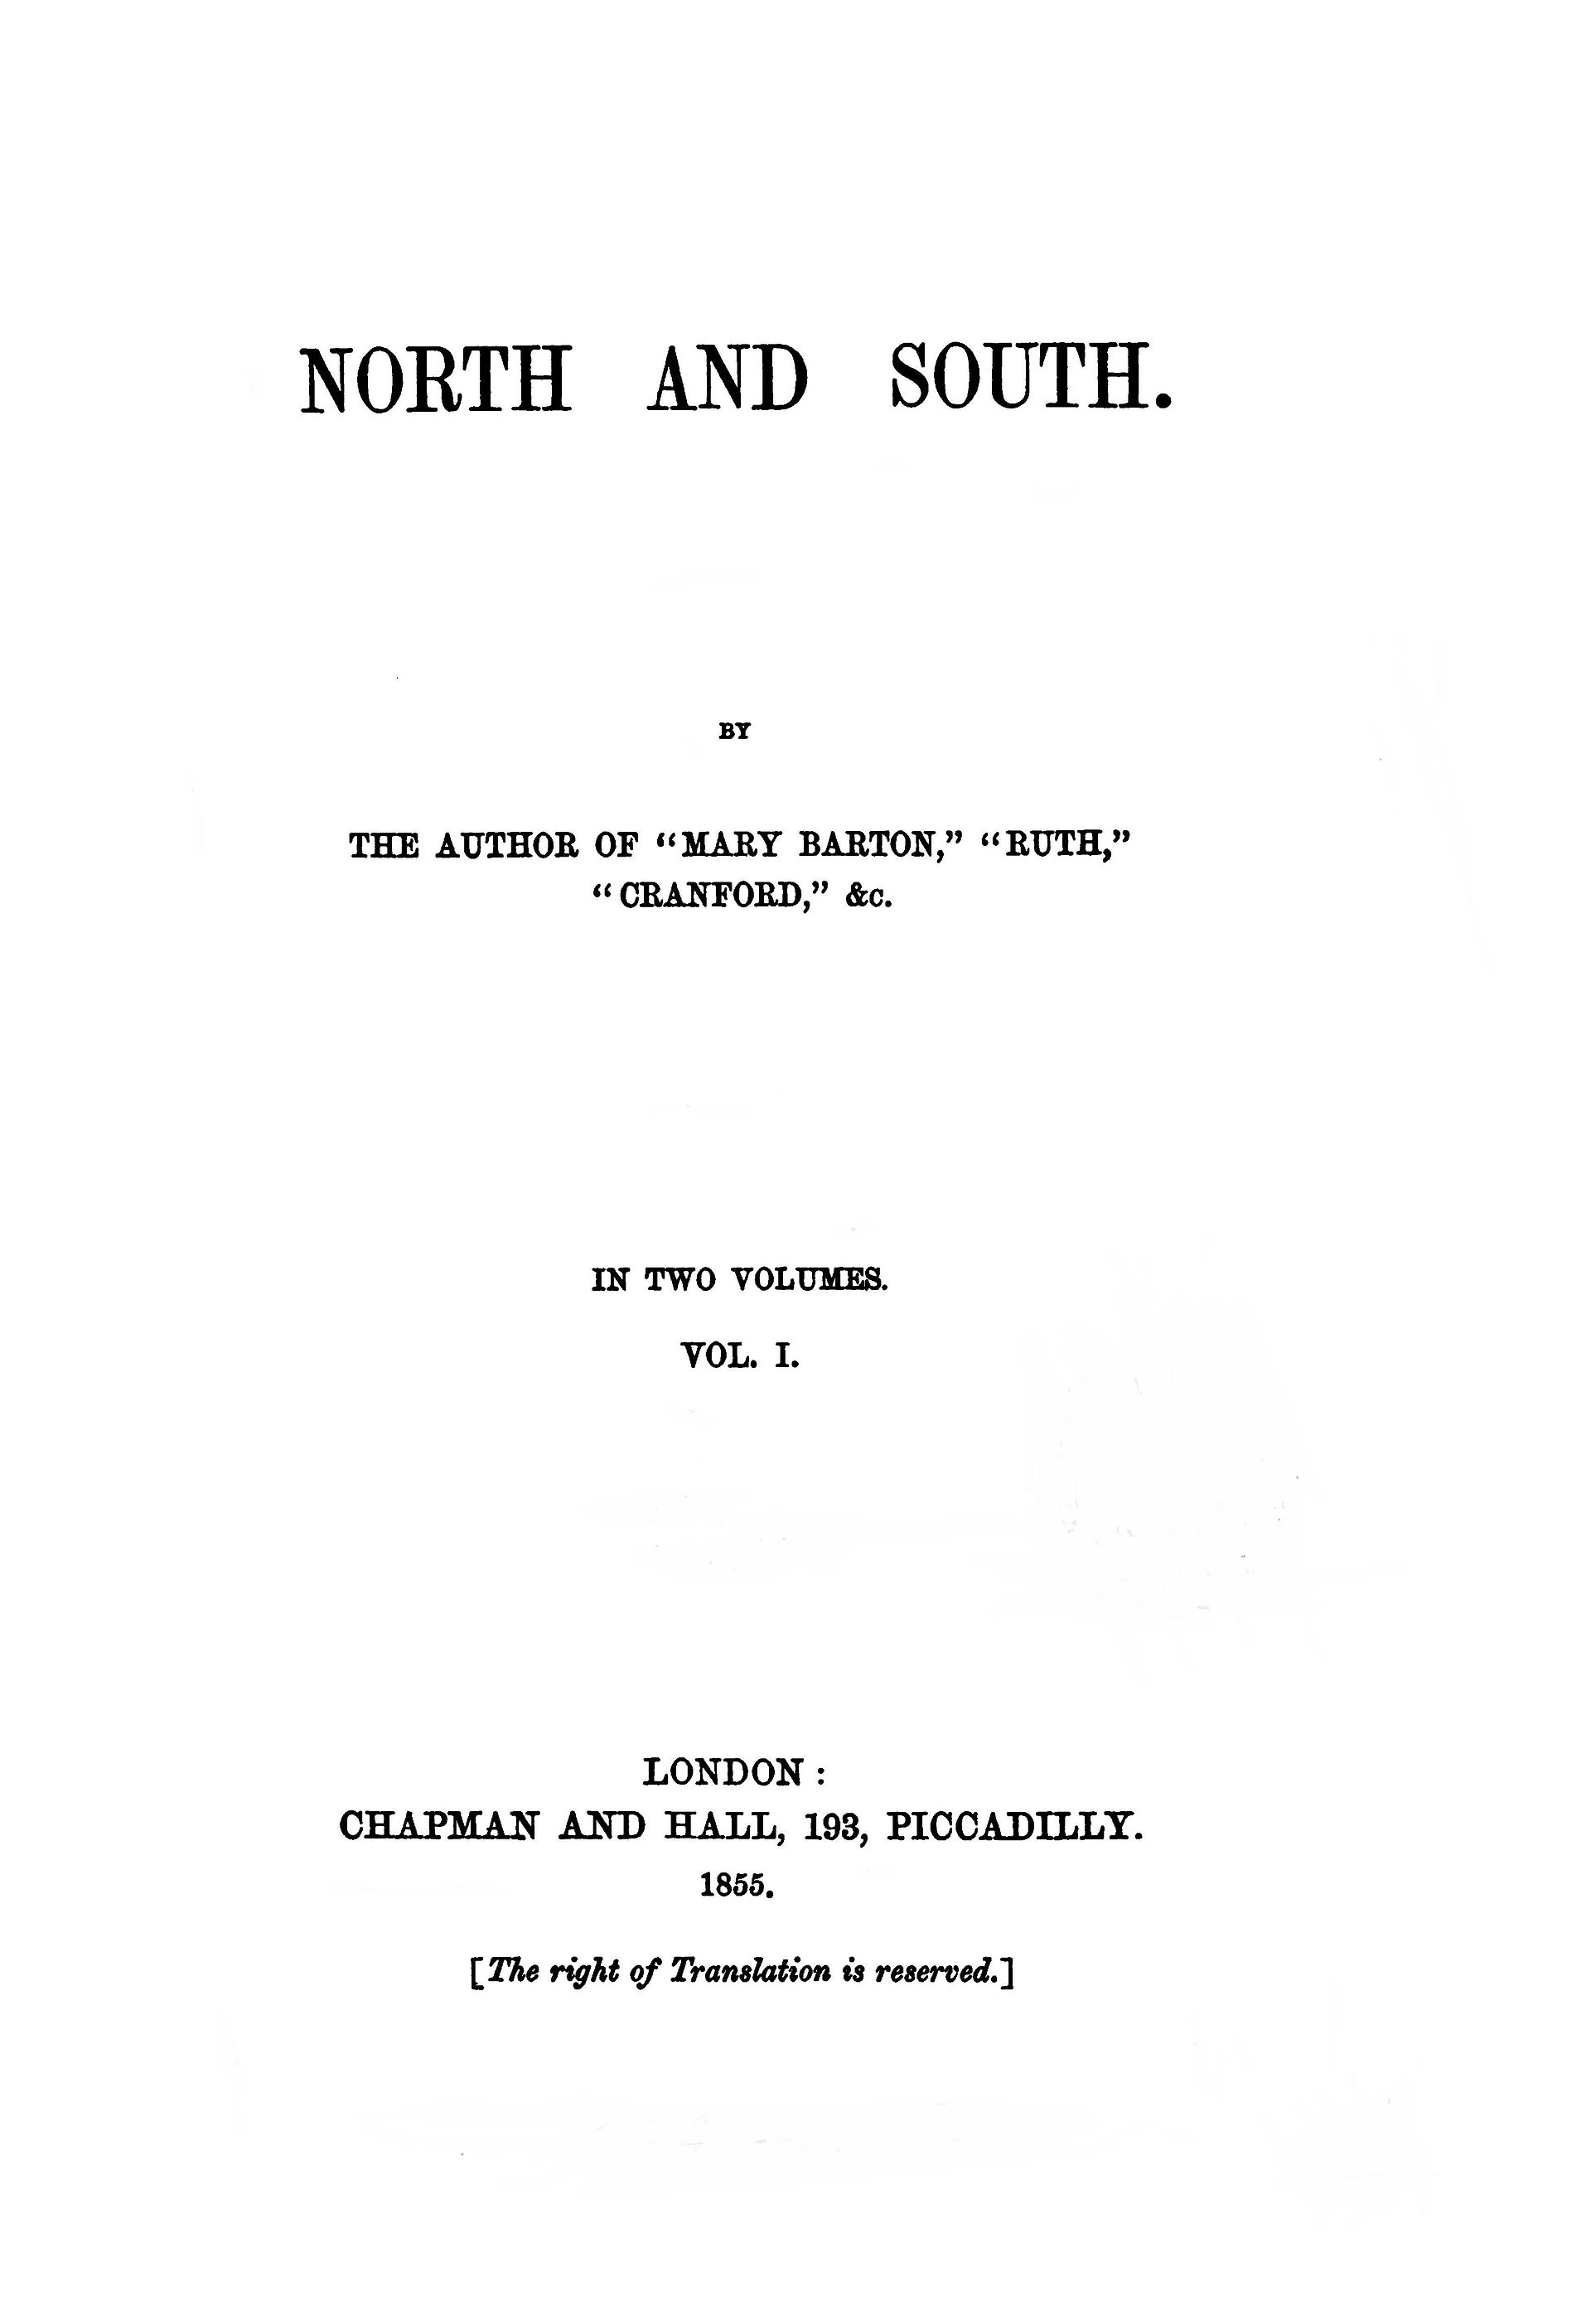 north and south by elizabeth gaskell Margaret had been on the point of telling her cousin of some of the plans and visions which she entertained as to her future life in the country parsonage, where her father and mother lived.